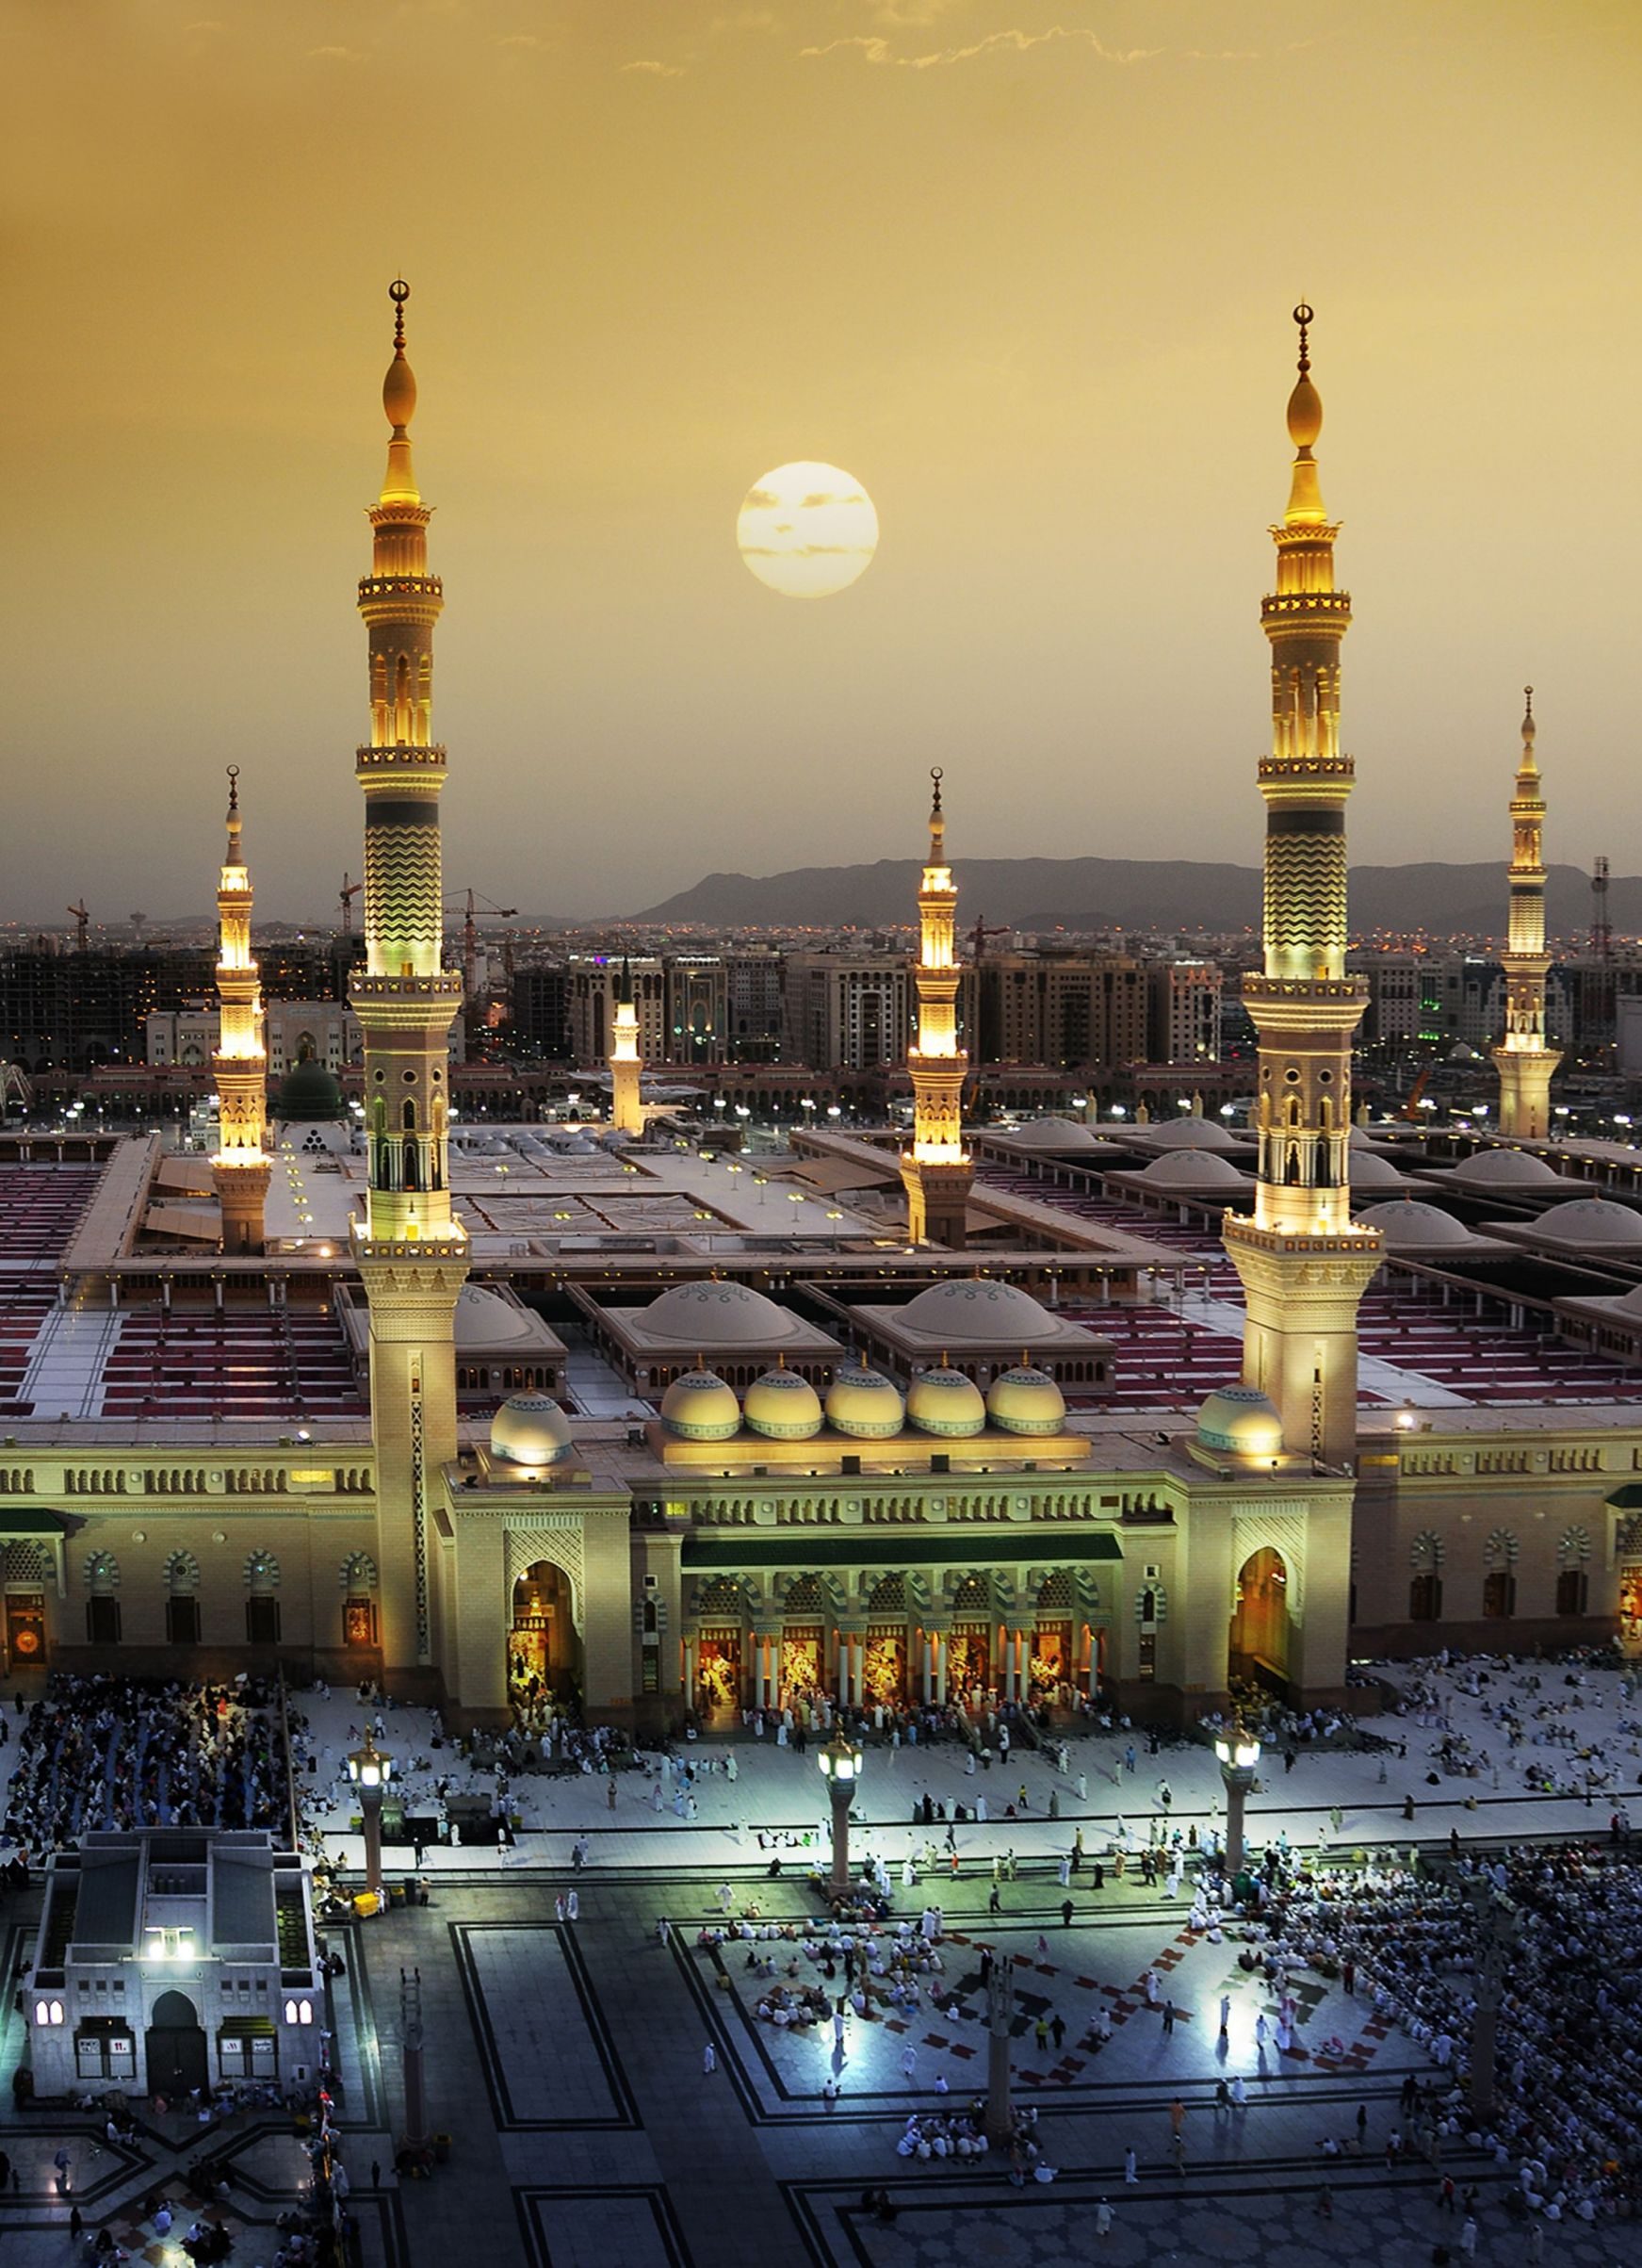 Holy Prophet Mosque, Al Madinah, Saudi Arabia | Travel | @projectinspo